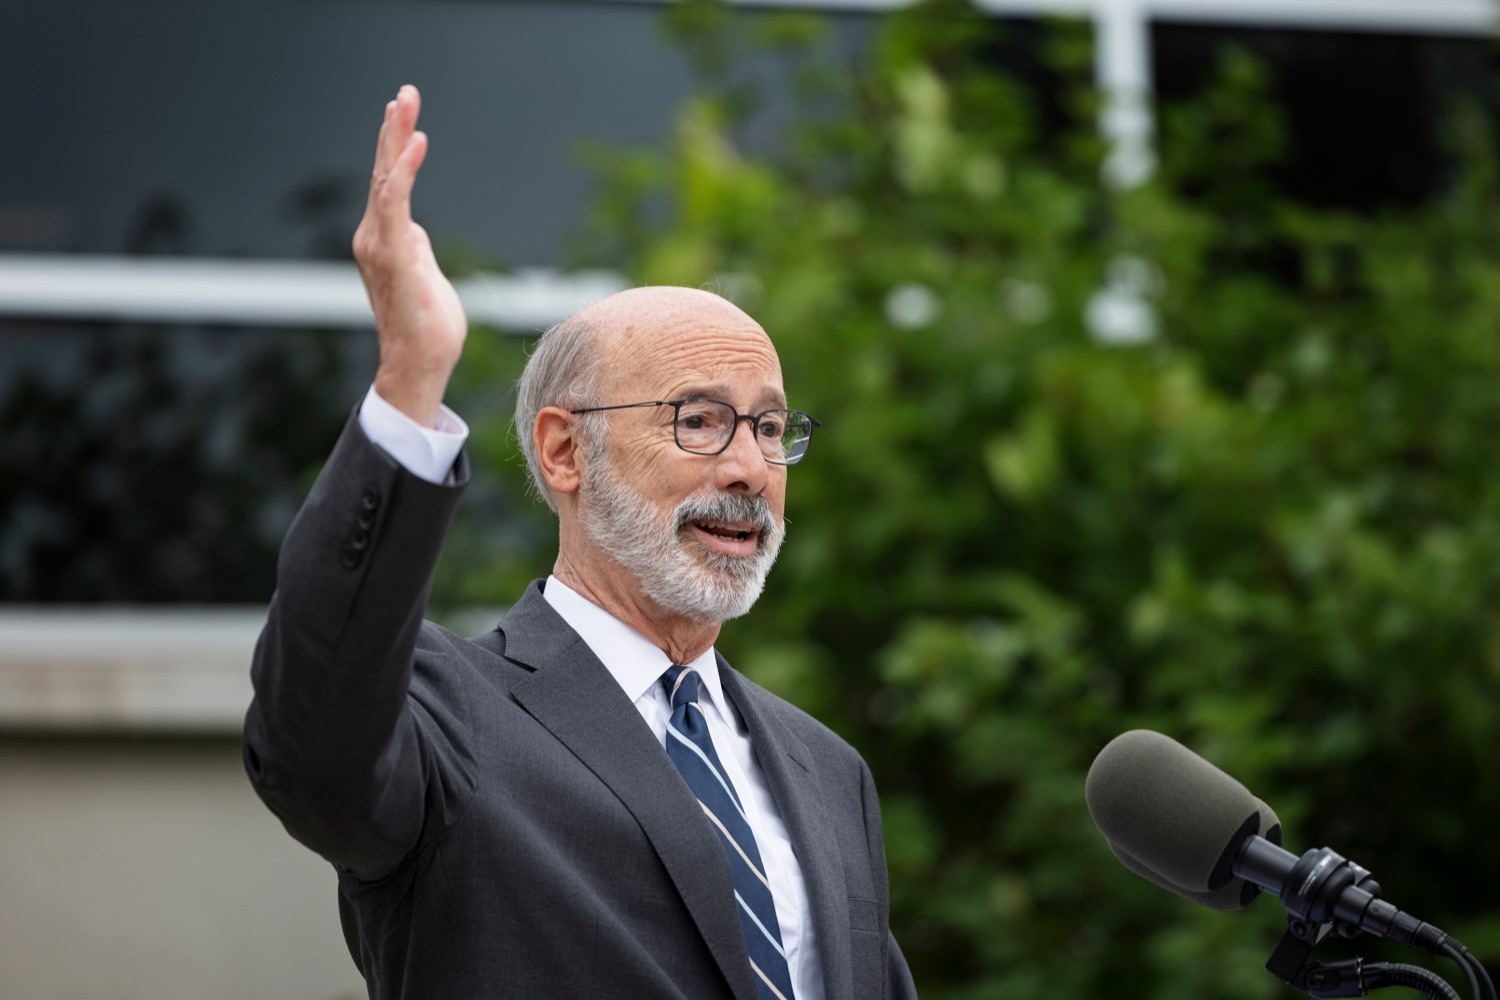 """<a href=""""https://filesource.wostreaming.net/commonwealthofpa/photo/20119_GOV_Vaccines_NK_011.jpg"""" target=""""_blank"""">⇣Download Photo<br></a>PA Governor Tom Wolf speaks during a press conference, which encouraged eligible Pennsylvanians who are not yet vaccinated to take advantage of their upcoming community COVID-19 vaccine clinic in partnership with the Zeta Theta Lambda Chapter of Alpha Phi Alpha fraternity, outside Hamilton Health Center in Harrisburg on Wednesday, October 6, 2021. The clinic will run on Saturday, October 9, COVID-19 vaccinations will be offered from 10am  2pm at Hamilton Health Center, 100 S. 17th St., Harrisburg, PA 17104."""